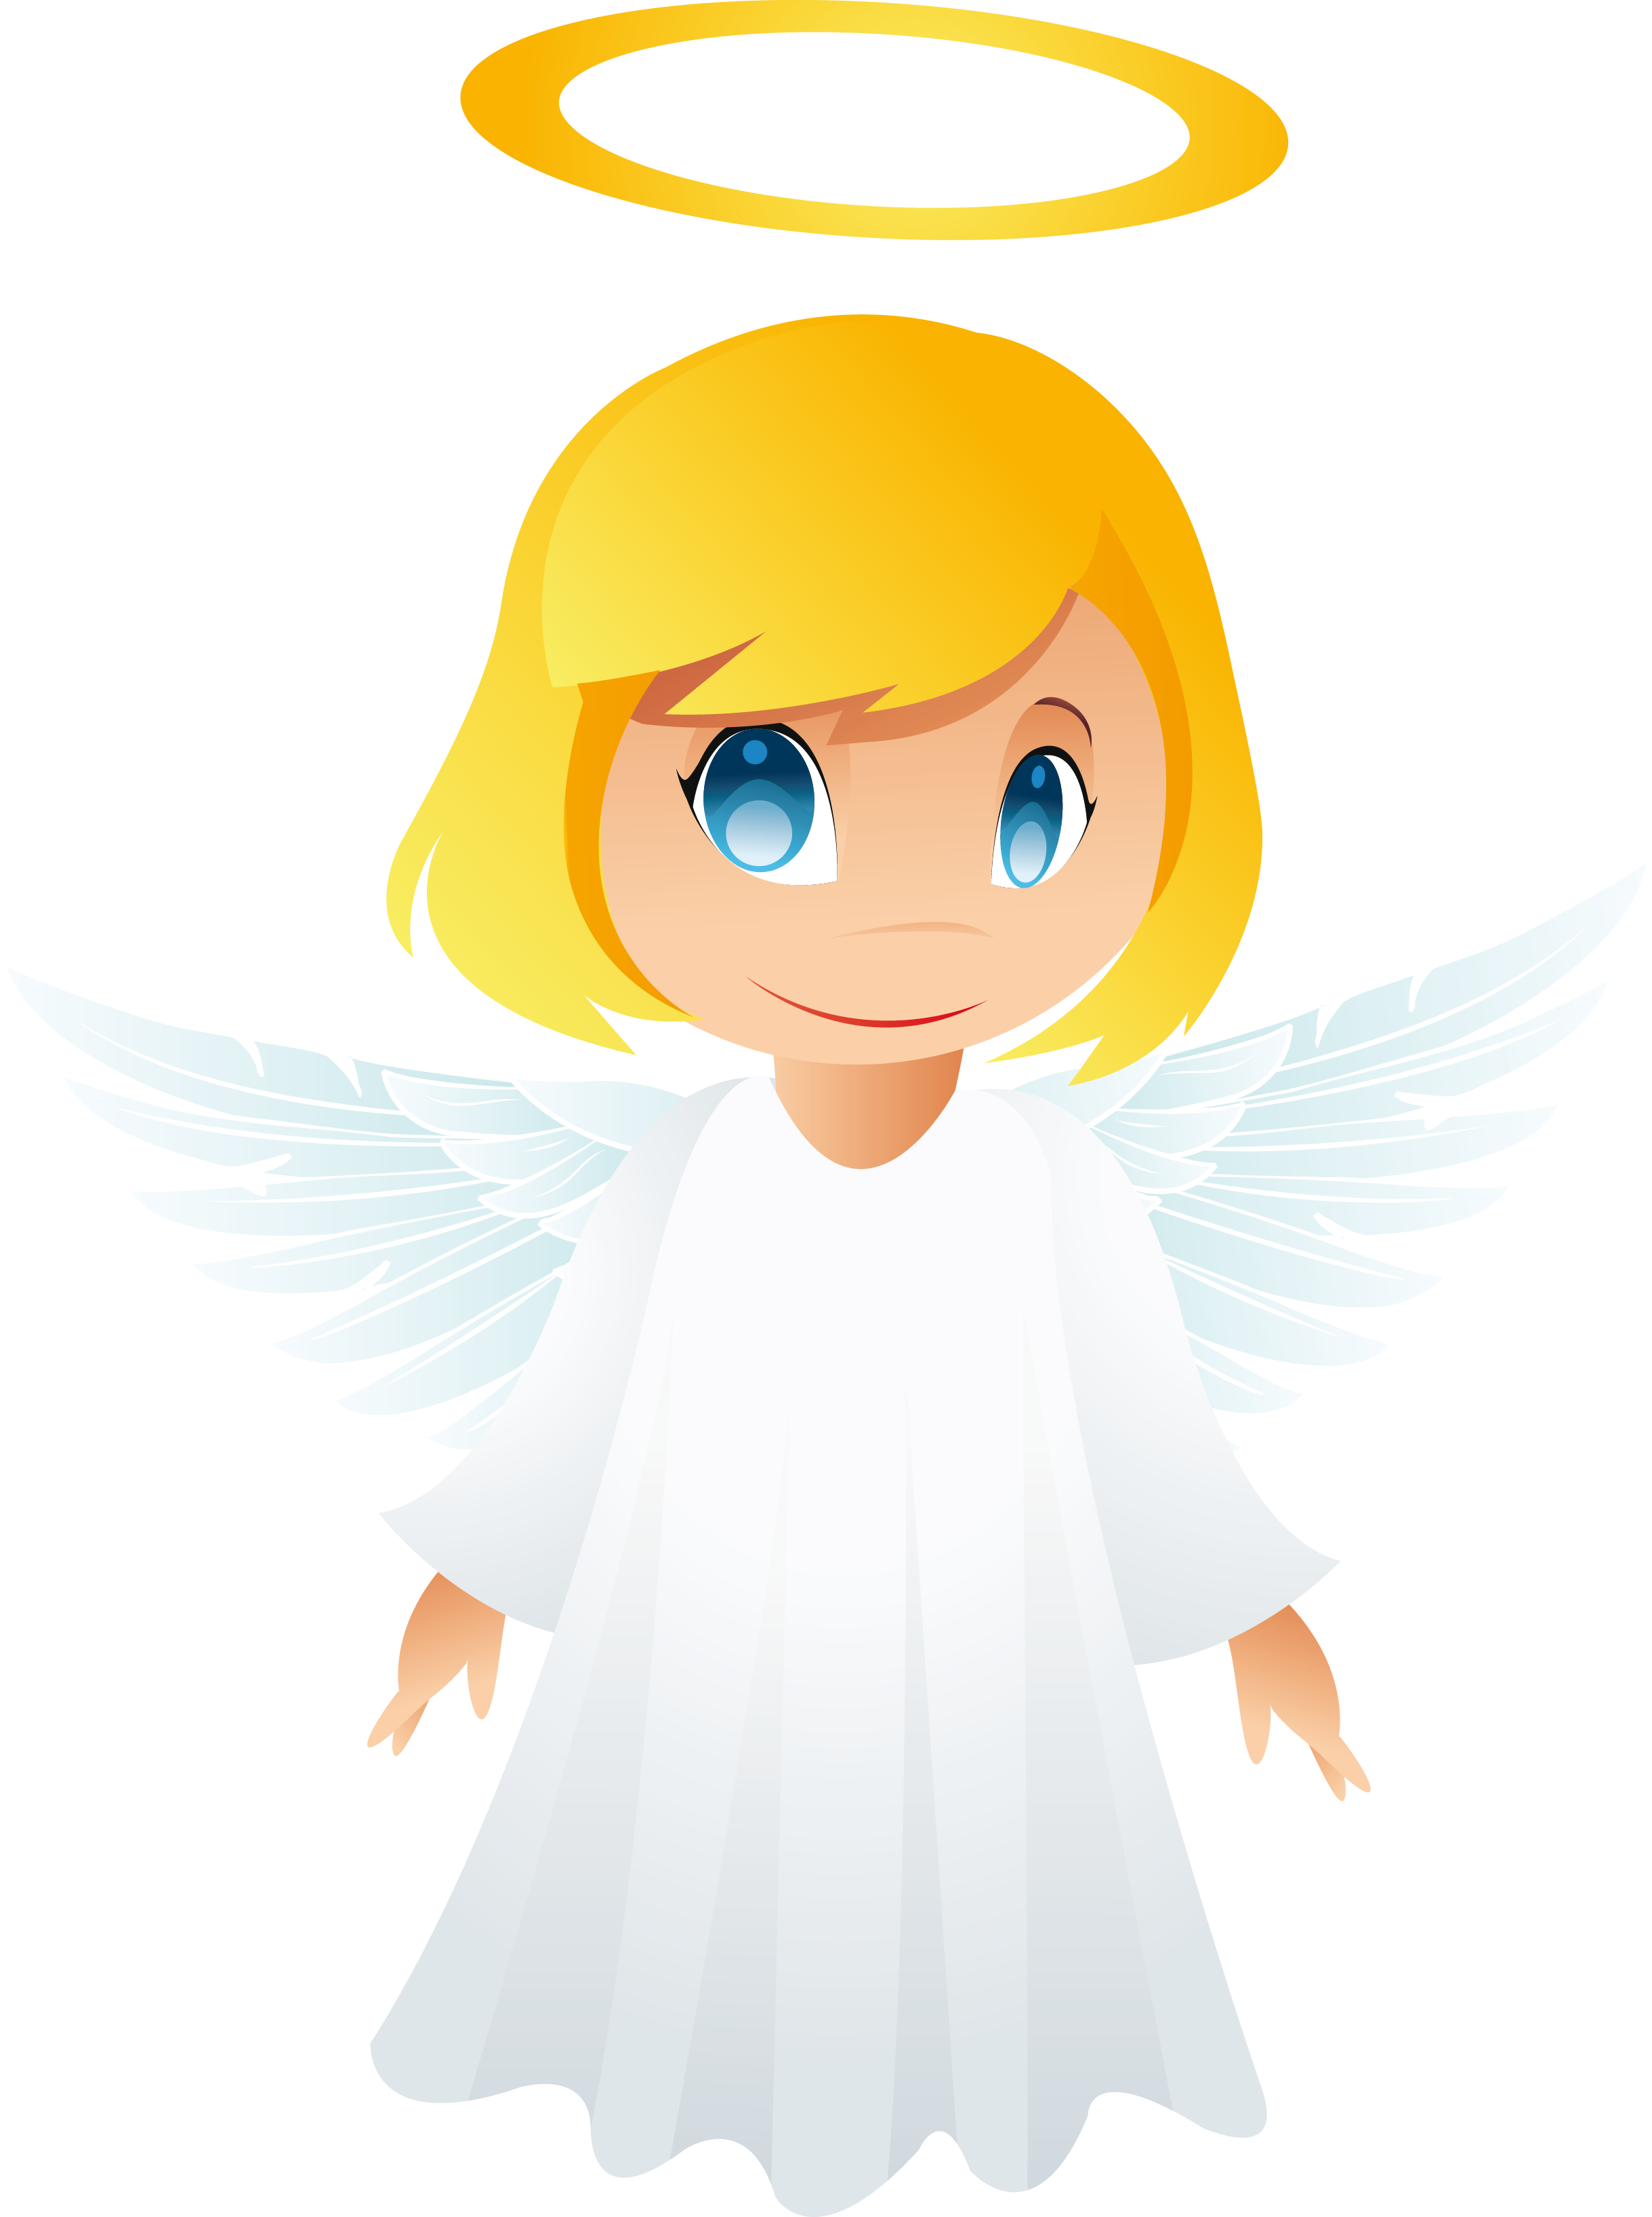 Angel of the lord clipart free Free Free Angel Images, Download Free Clip Art, Free Clip Art on ... free